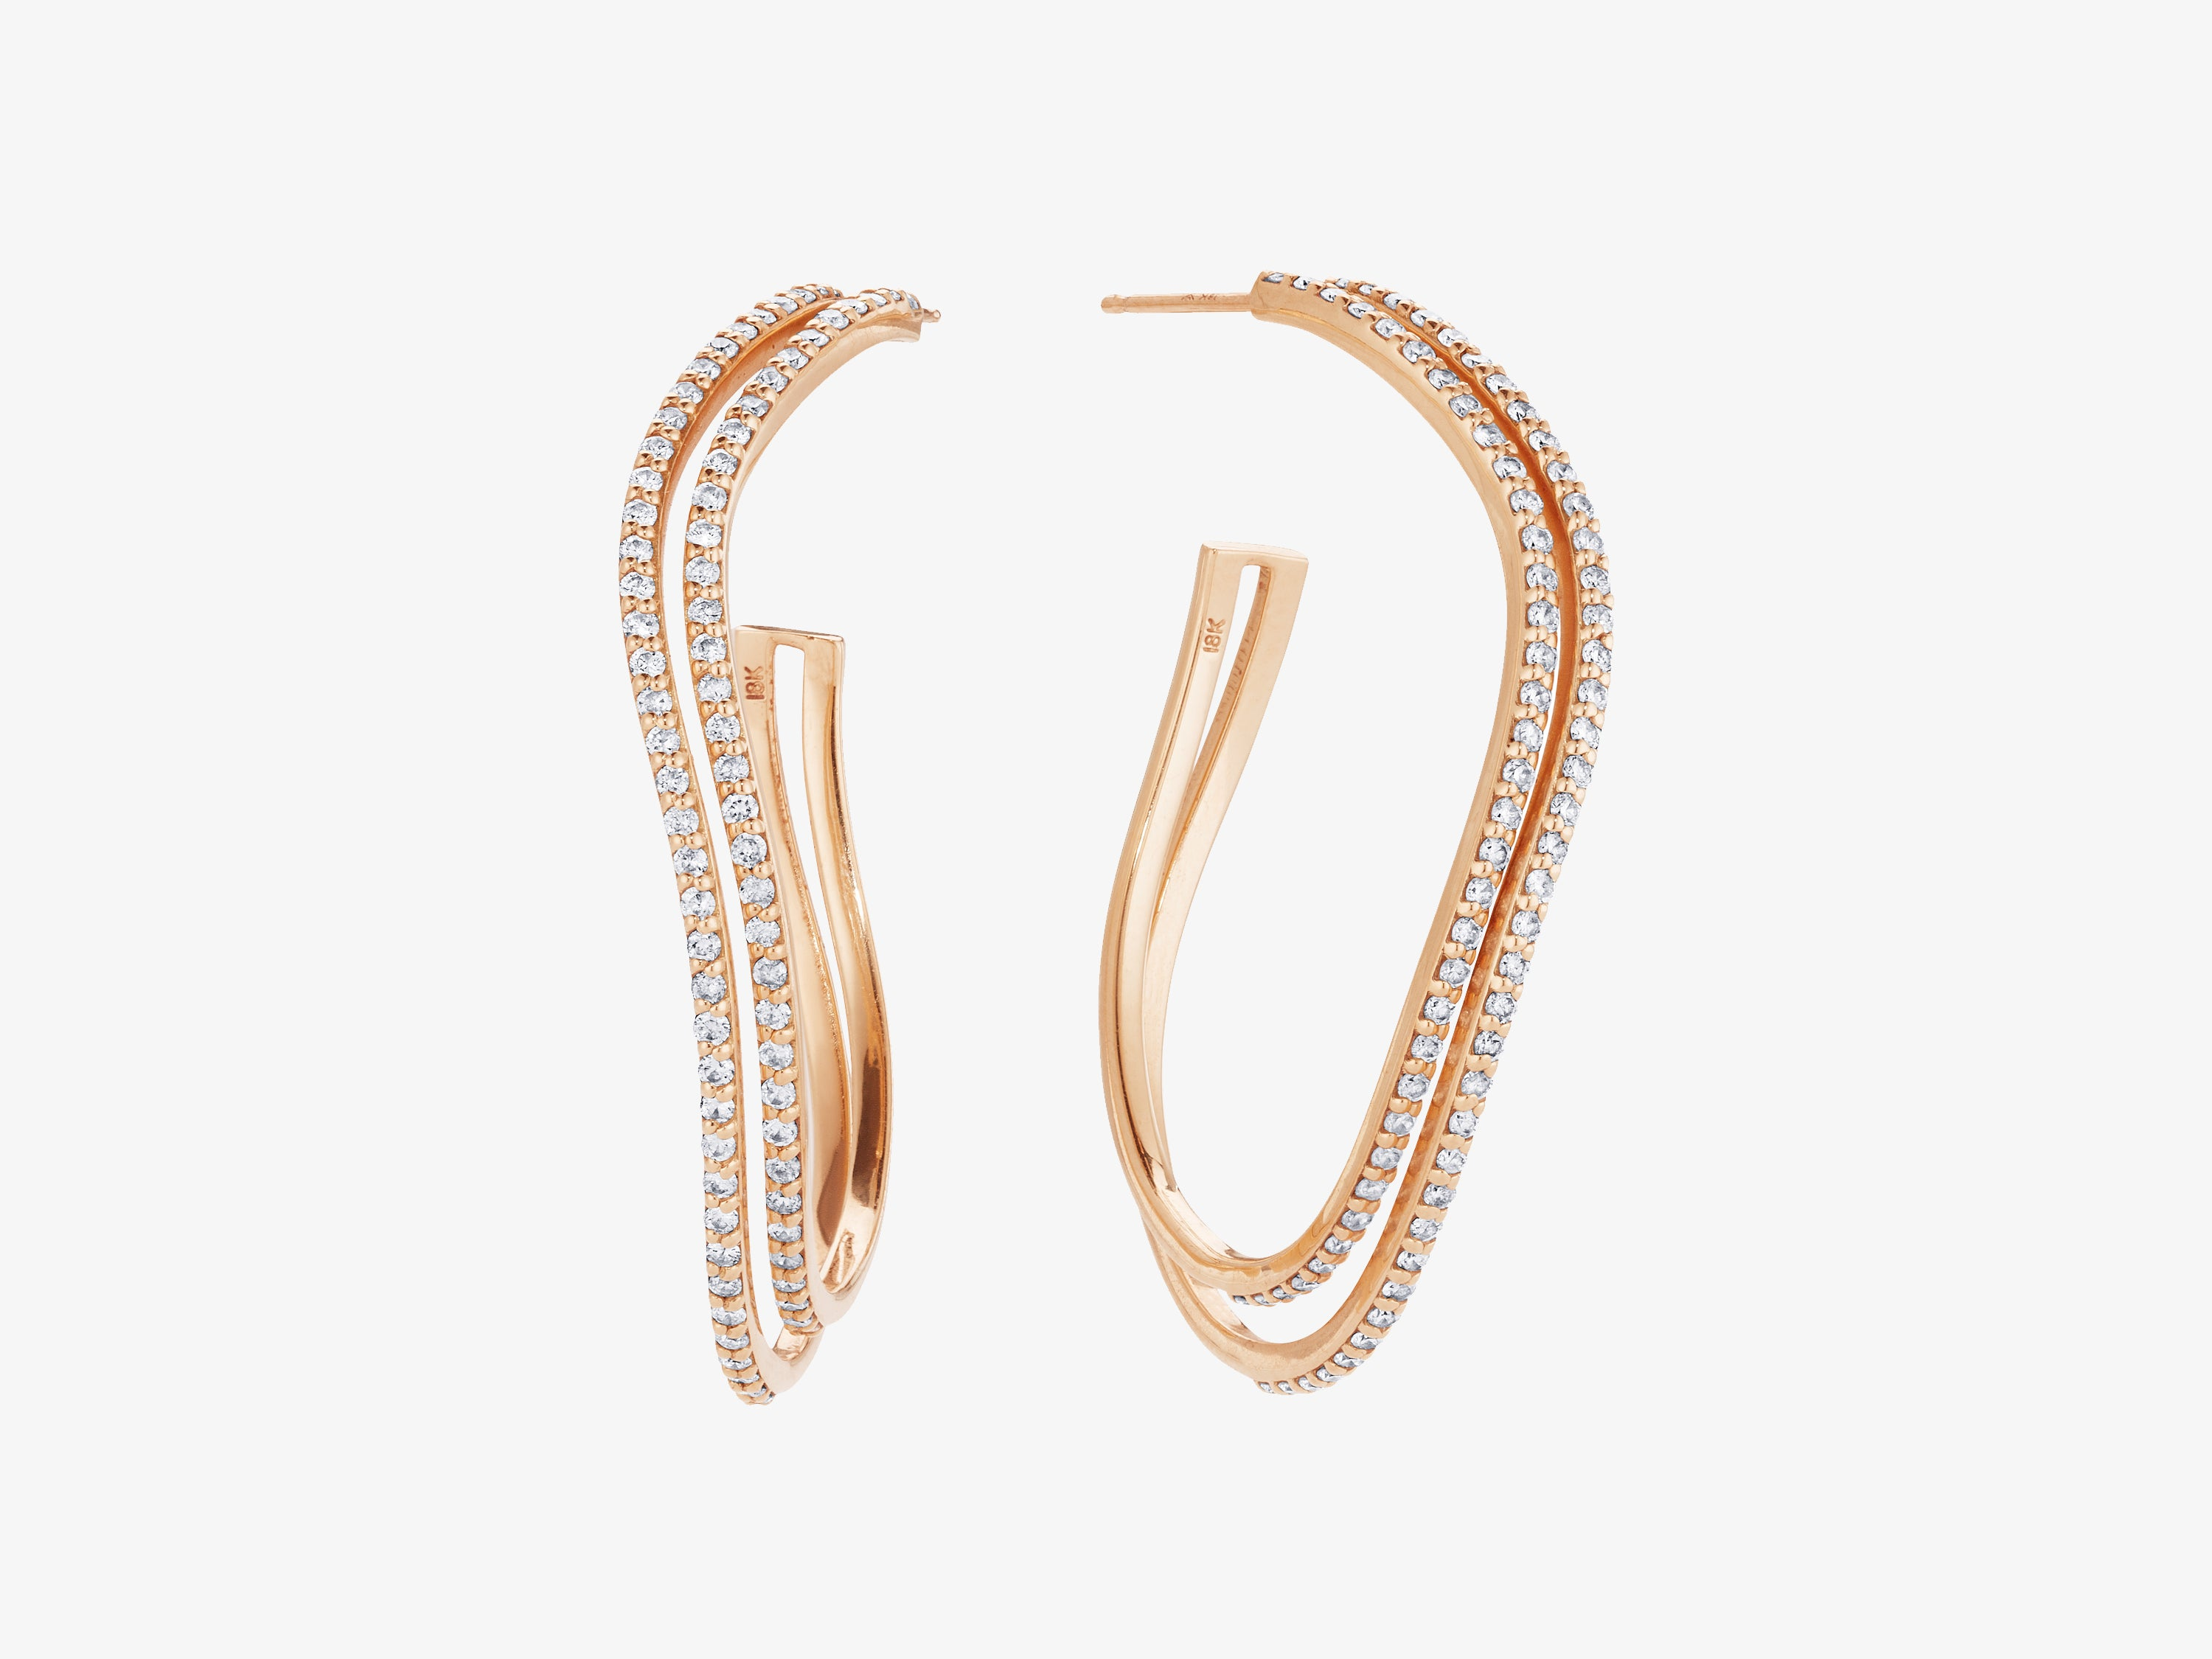 Large Two Row Hoop Earrings